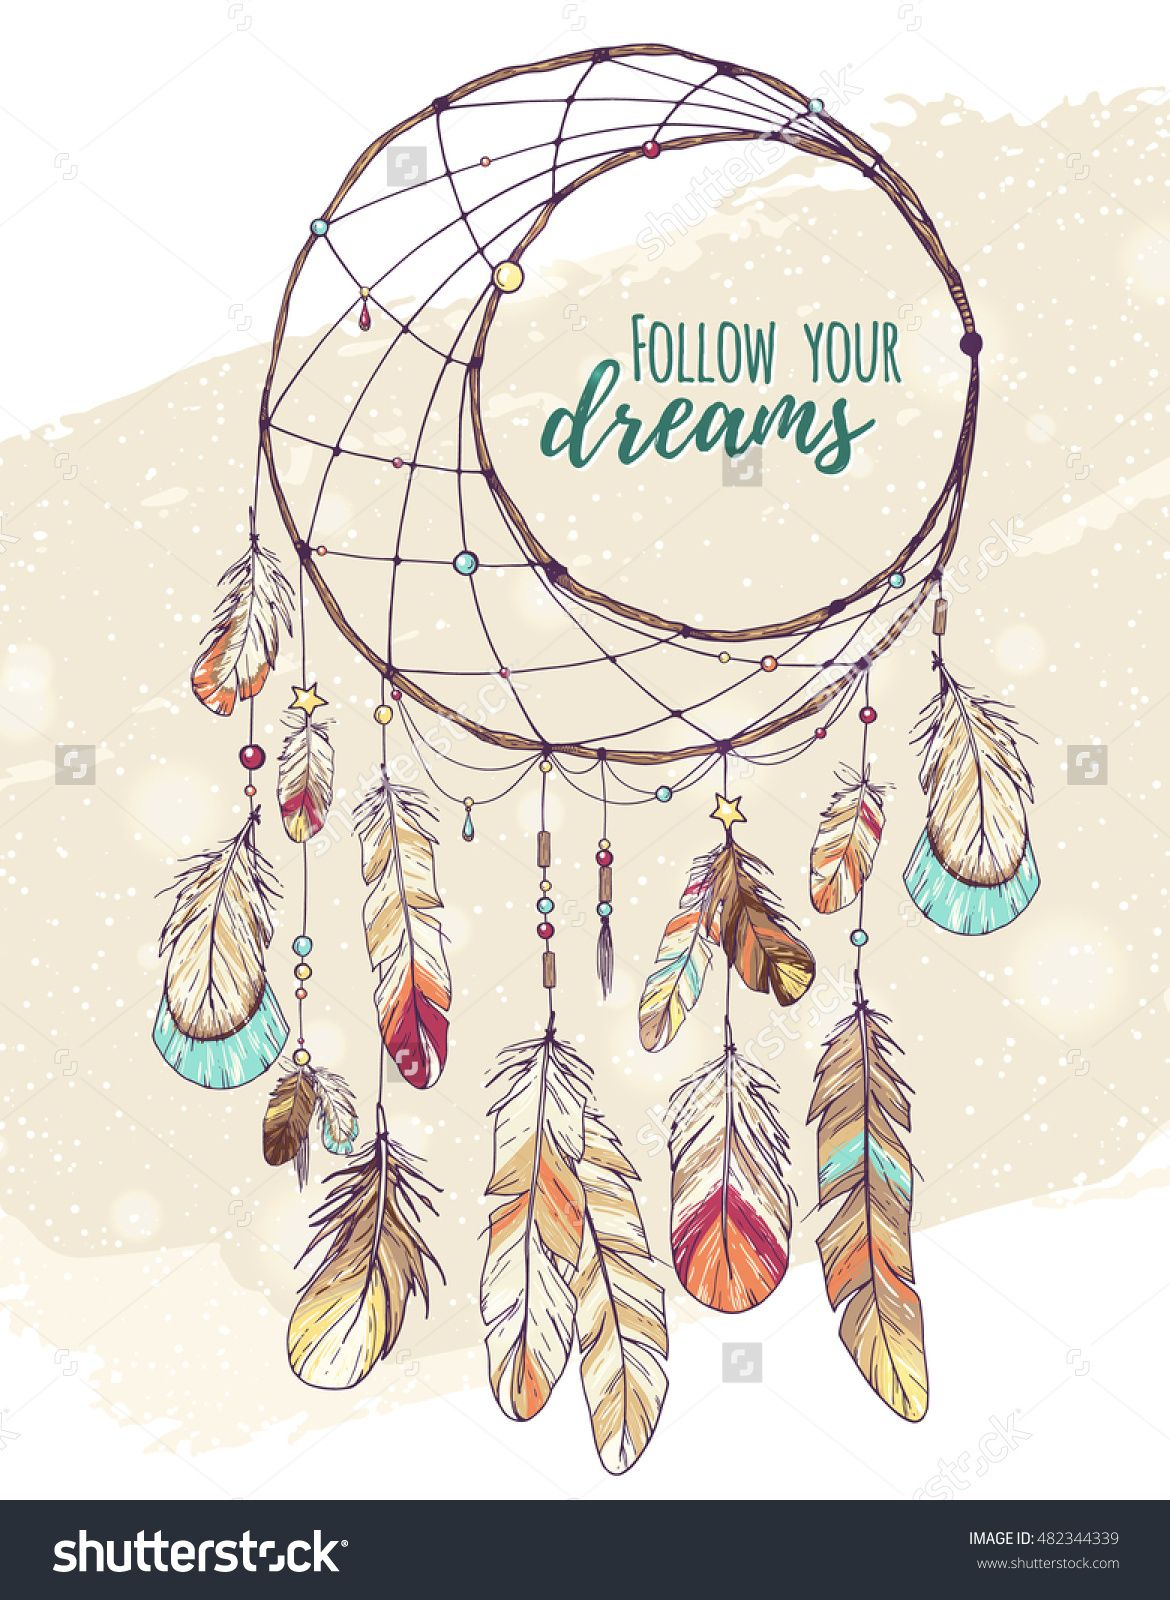 bohemian ethnic dream catcher with feathers and decor ...